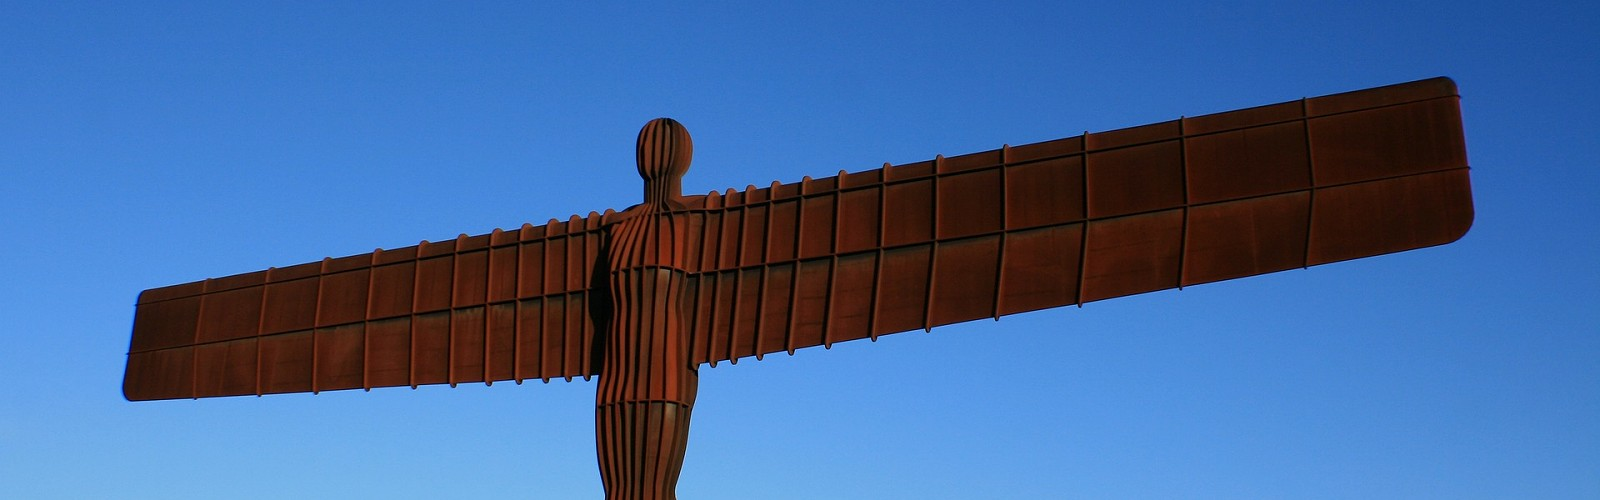 the Angel of the North (image: Patrick Routeledge / pixabay)